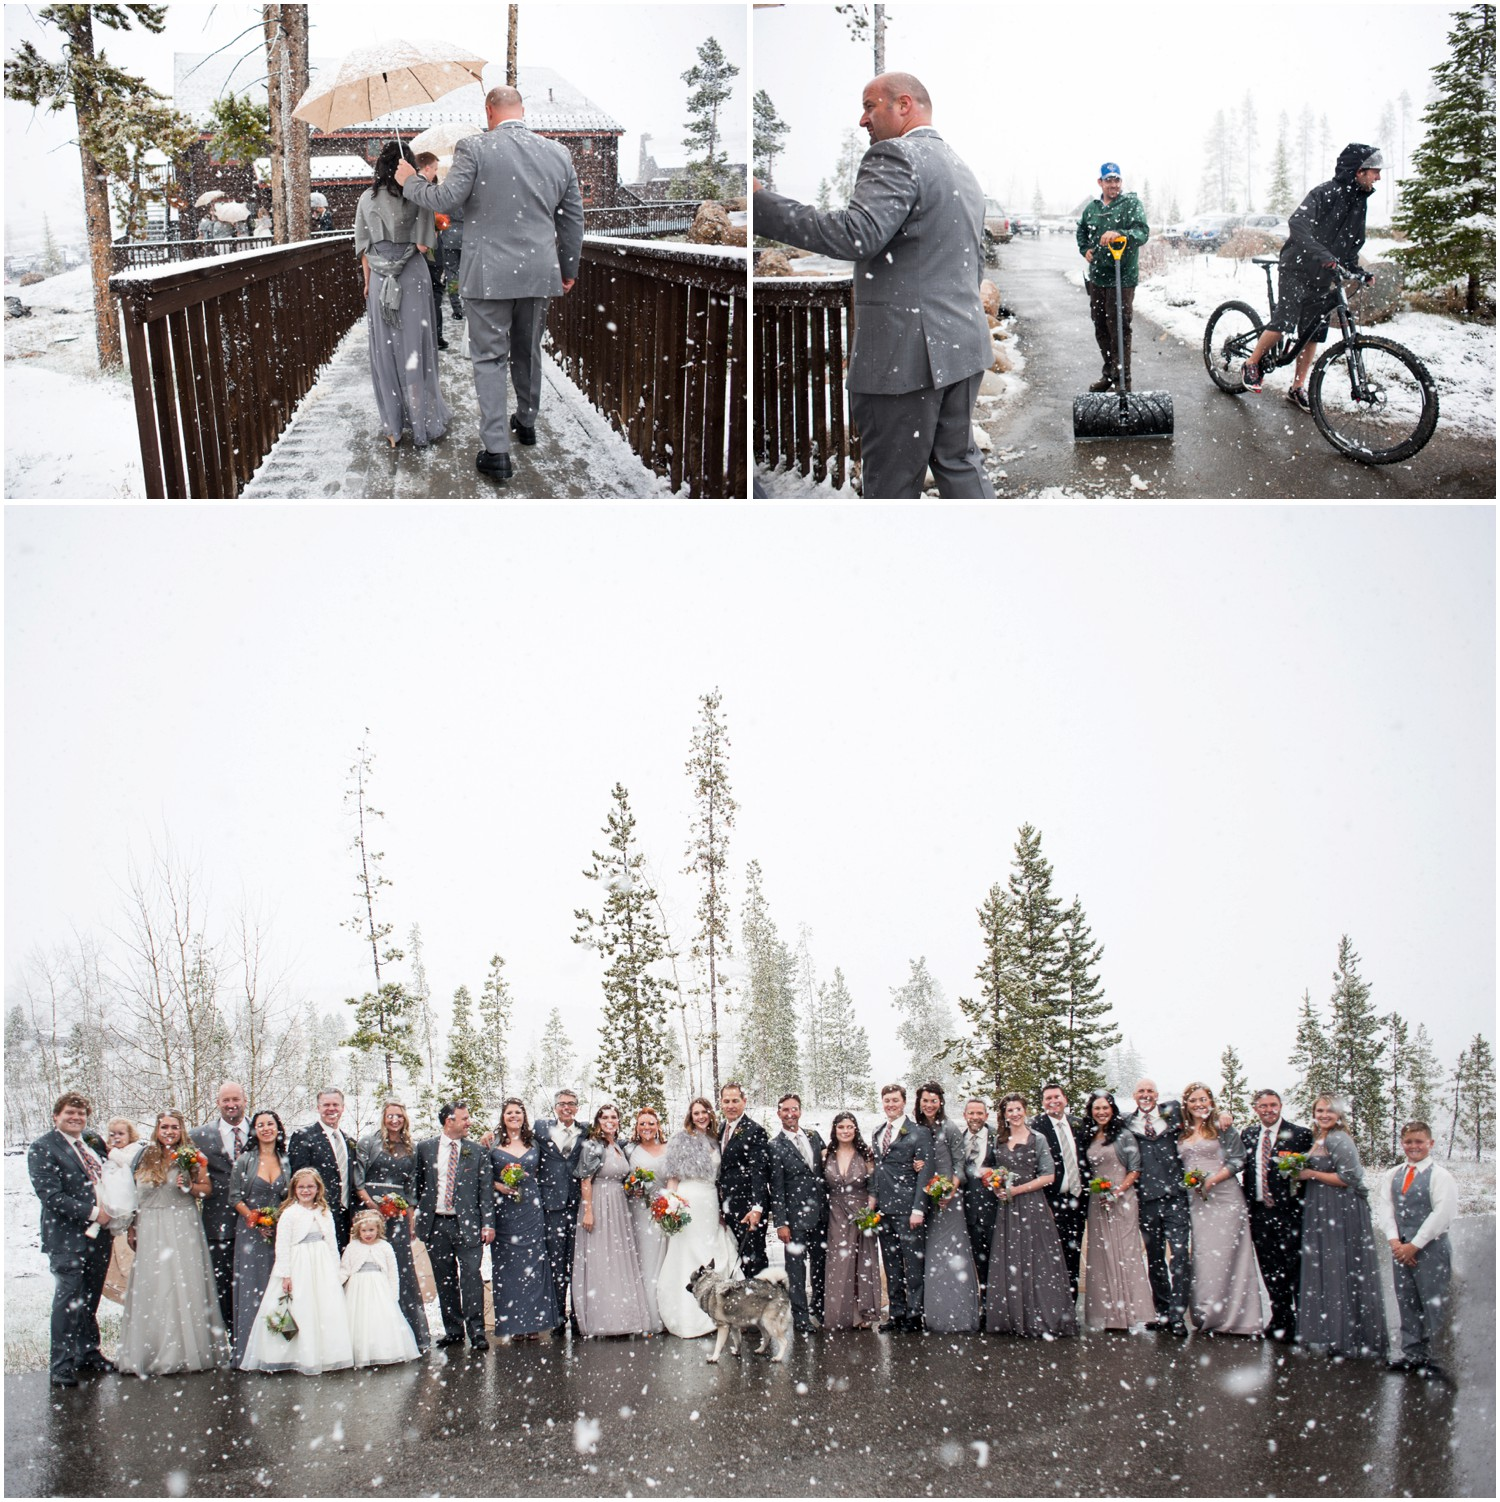 Devils-thumb-ranch-colorado-snowy-wedding-_0038.jpg